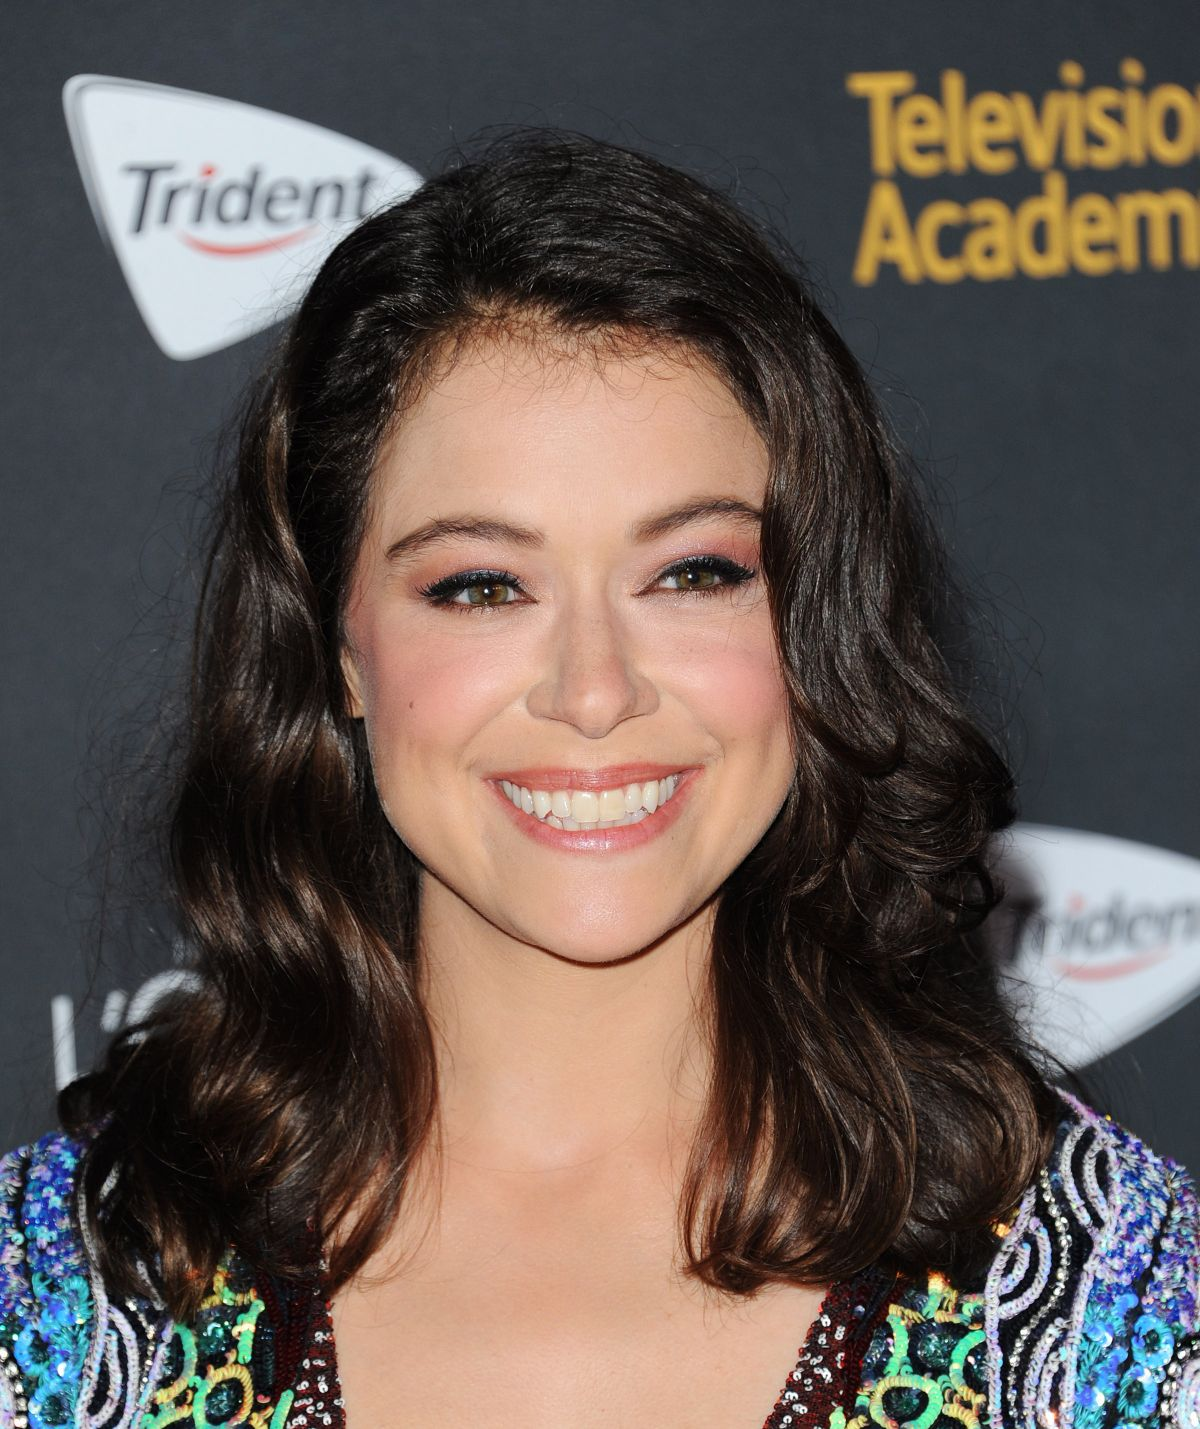 TATIANA MASLANY at Television Academy Reception for Emmy Nominees in West Hollywood 09/16/2016